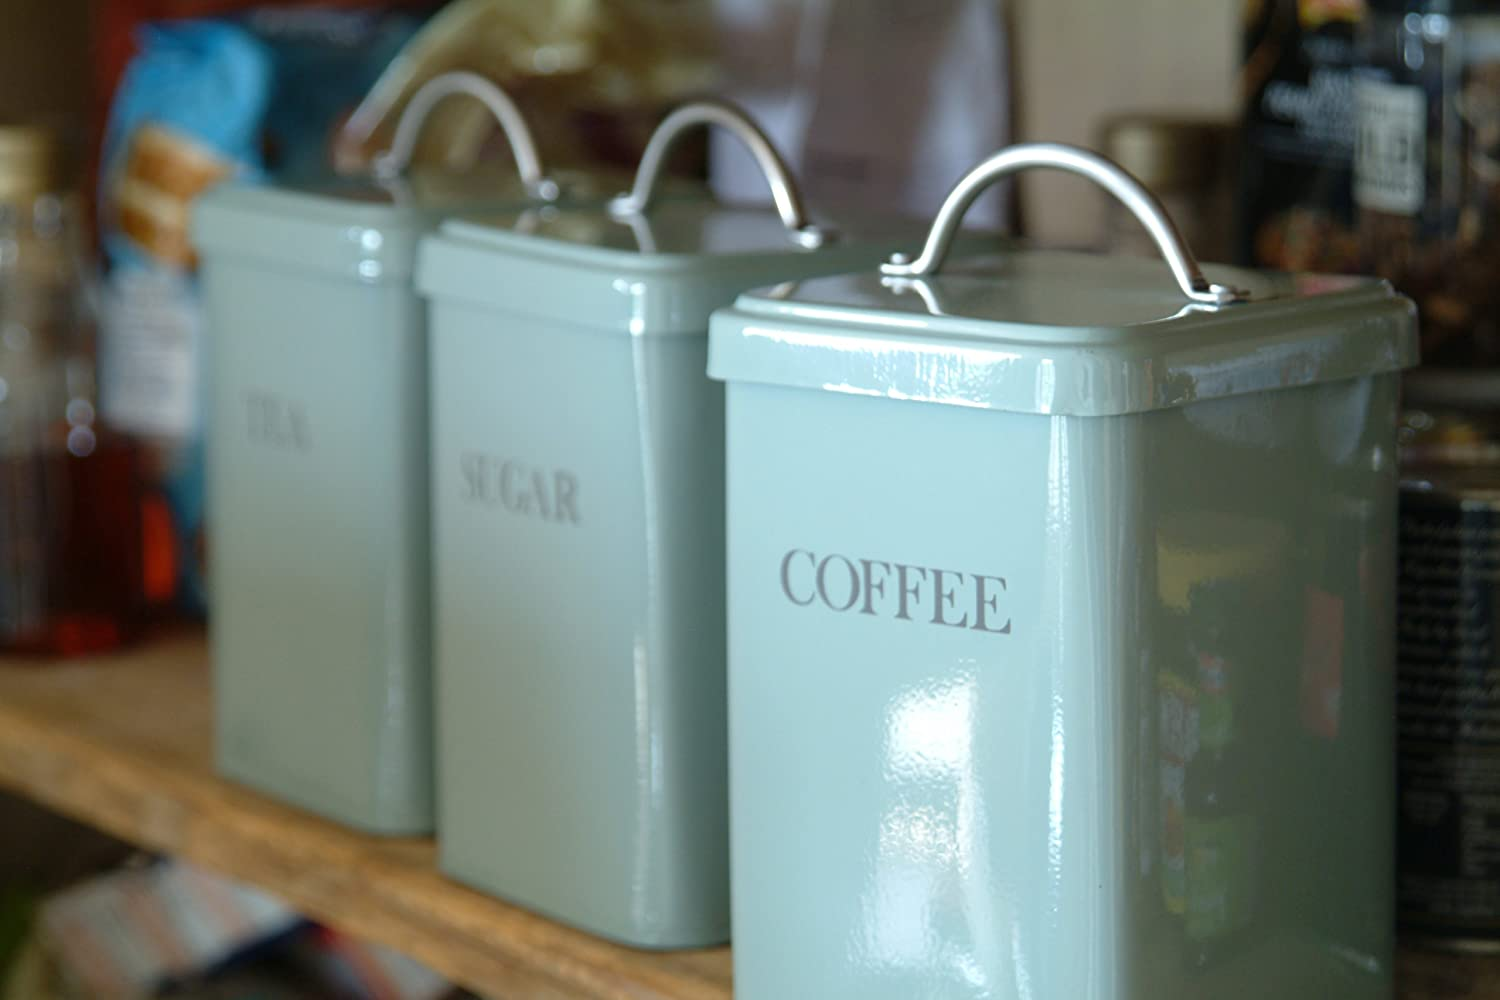 garden trading set of 3 canisters tea coffee sugar in garden trading set of 3 canisters tea coffee sugar in shutter blue amazon co uk kitchen home